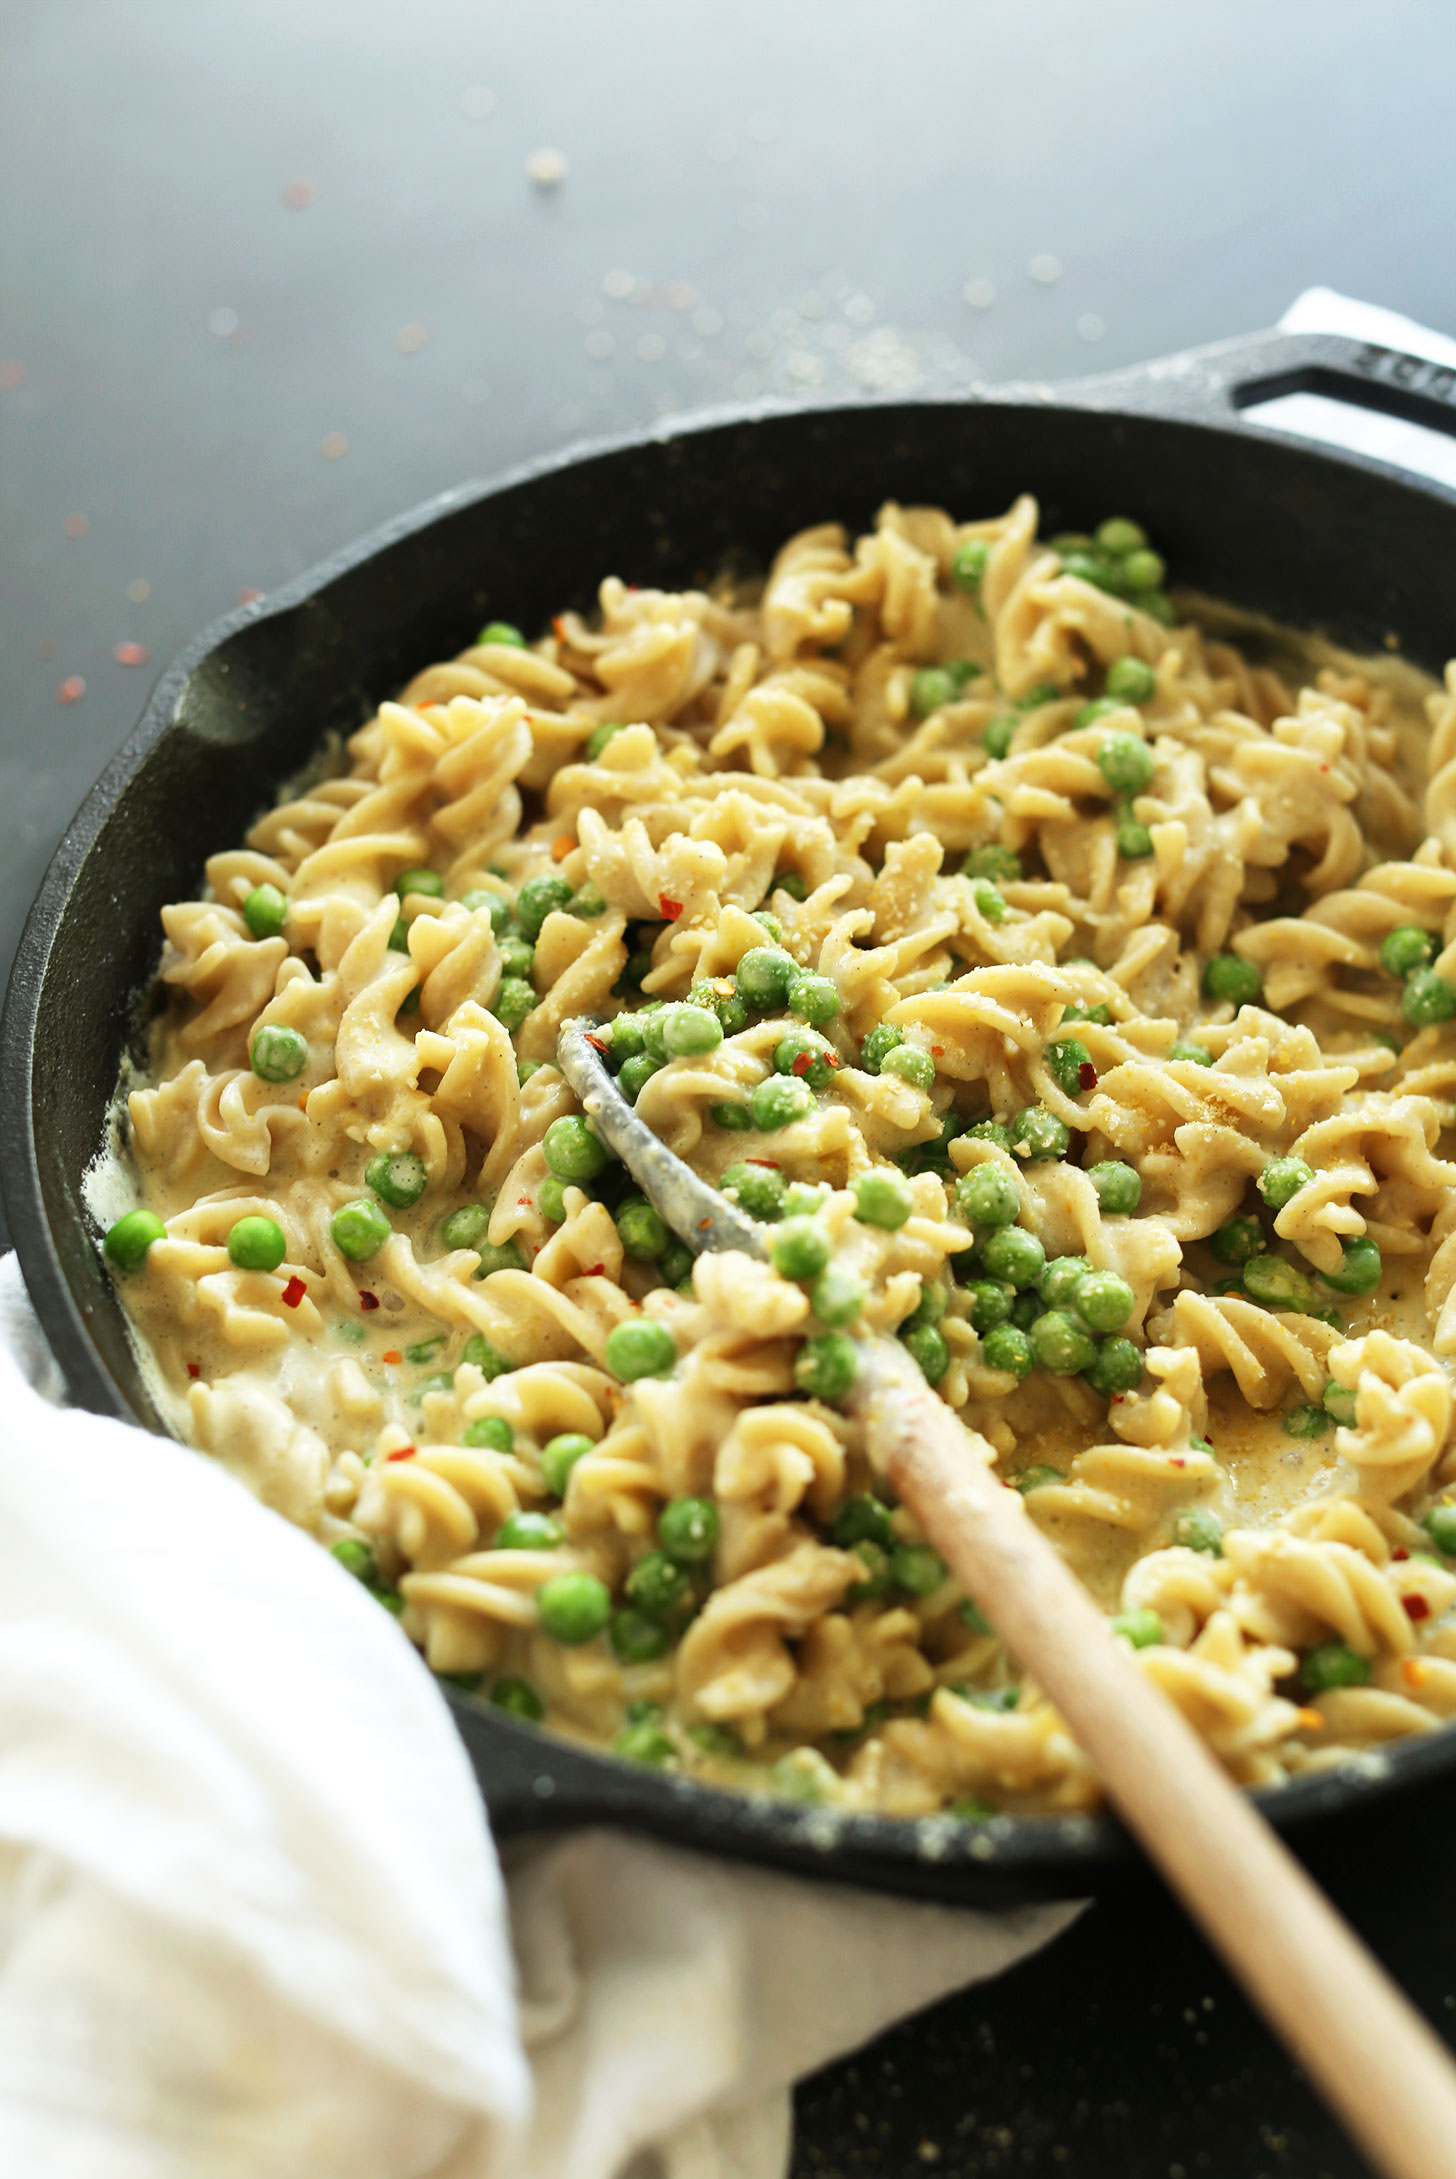 CREAMY, delicious Vegan Alfredo Pasta! 9 ingredients, SIMPLE methods, SO delicious! #vegan #pasta #recipe #dinner #minimalistbaker